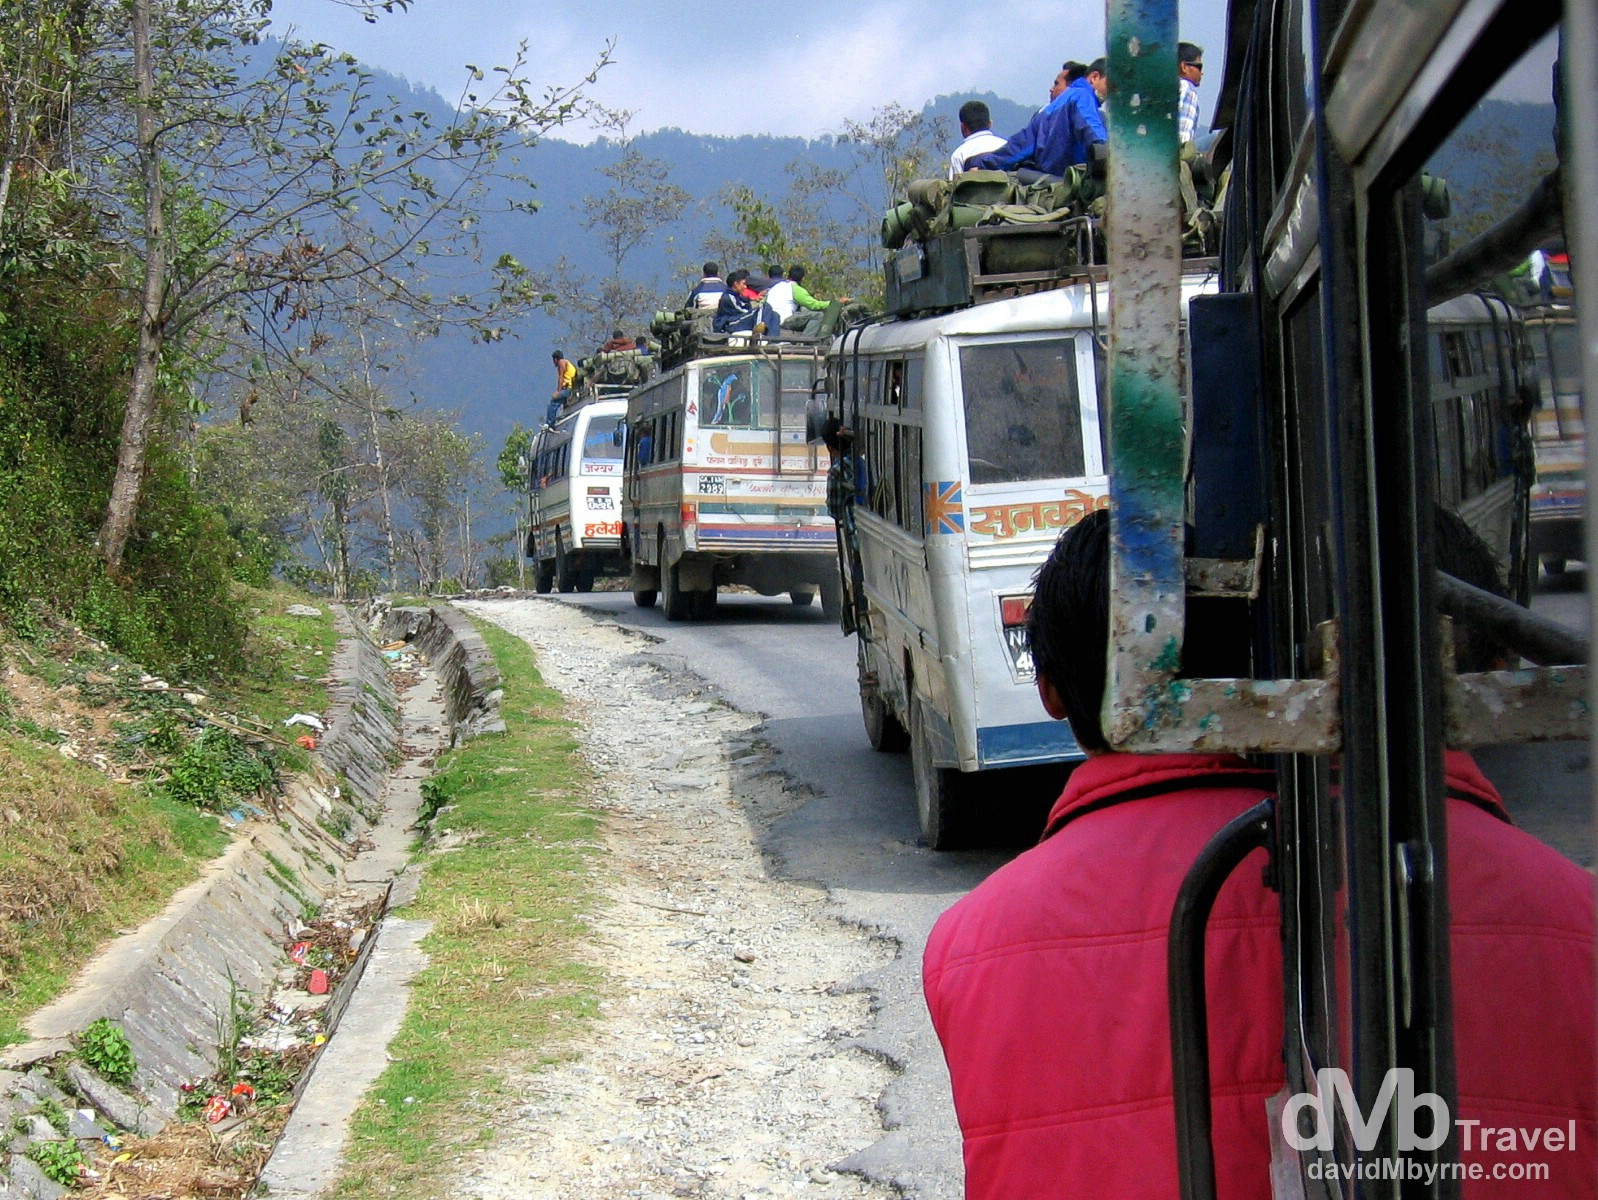 A bus convey in the Kathmandu Valley en route to Pokhara, Nepal. March 10th 2008.